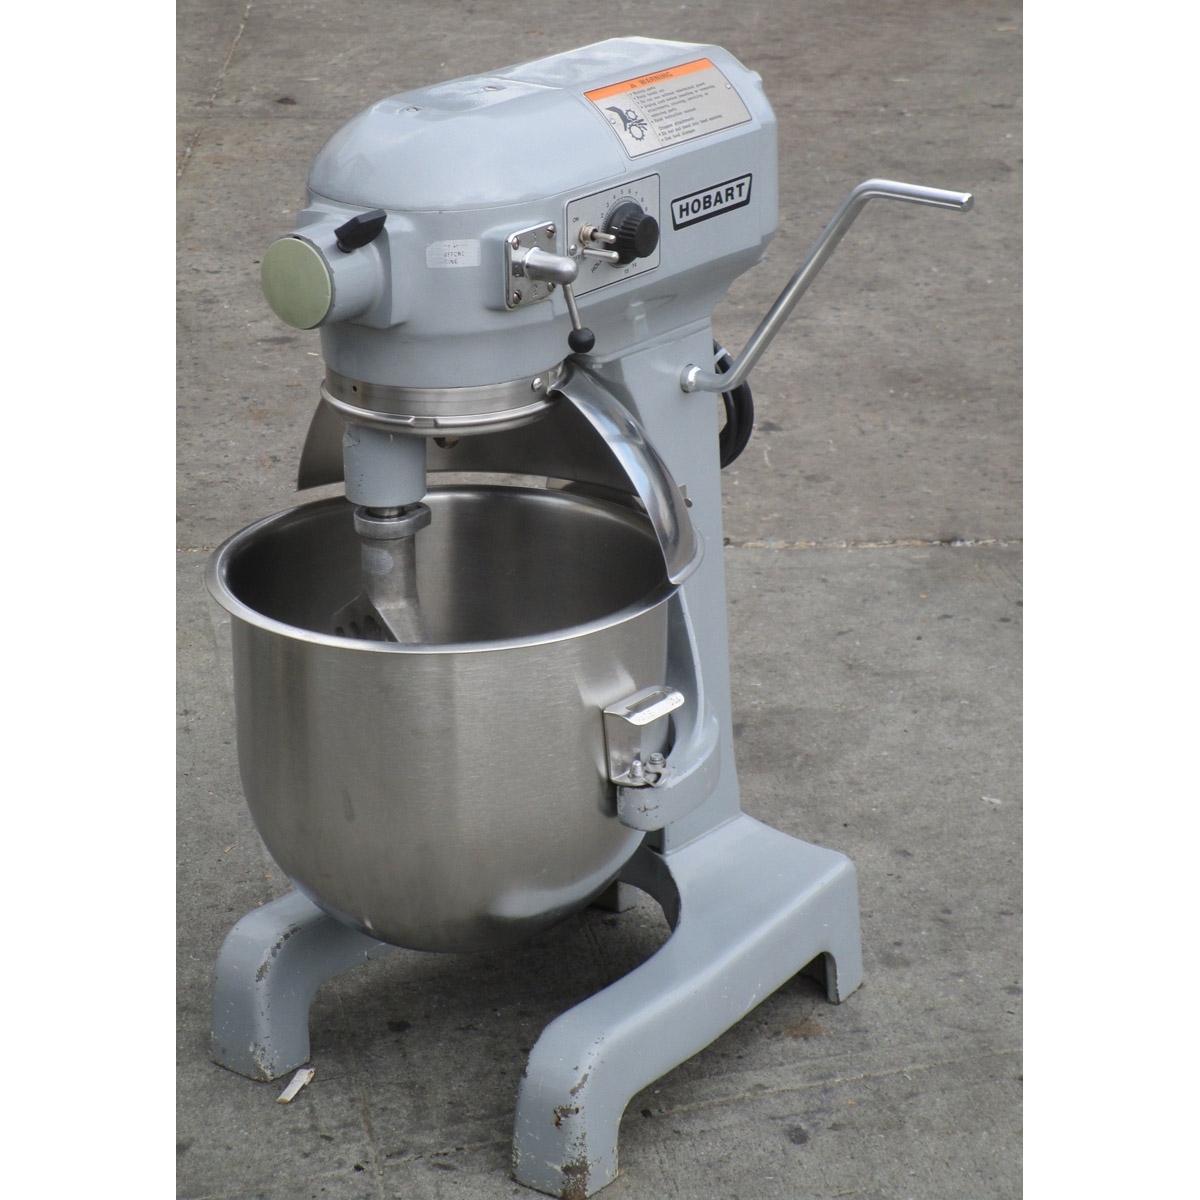 Hobart-Quart-A-t-Mixer-Without-Cage-Very-Good-Condition Product Image 792